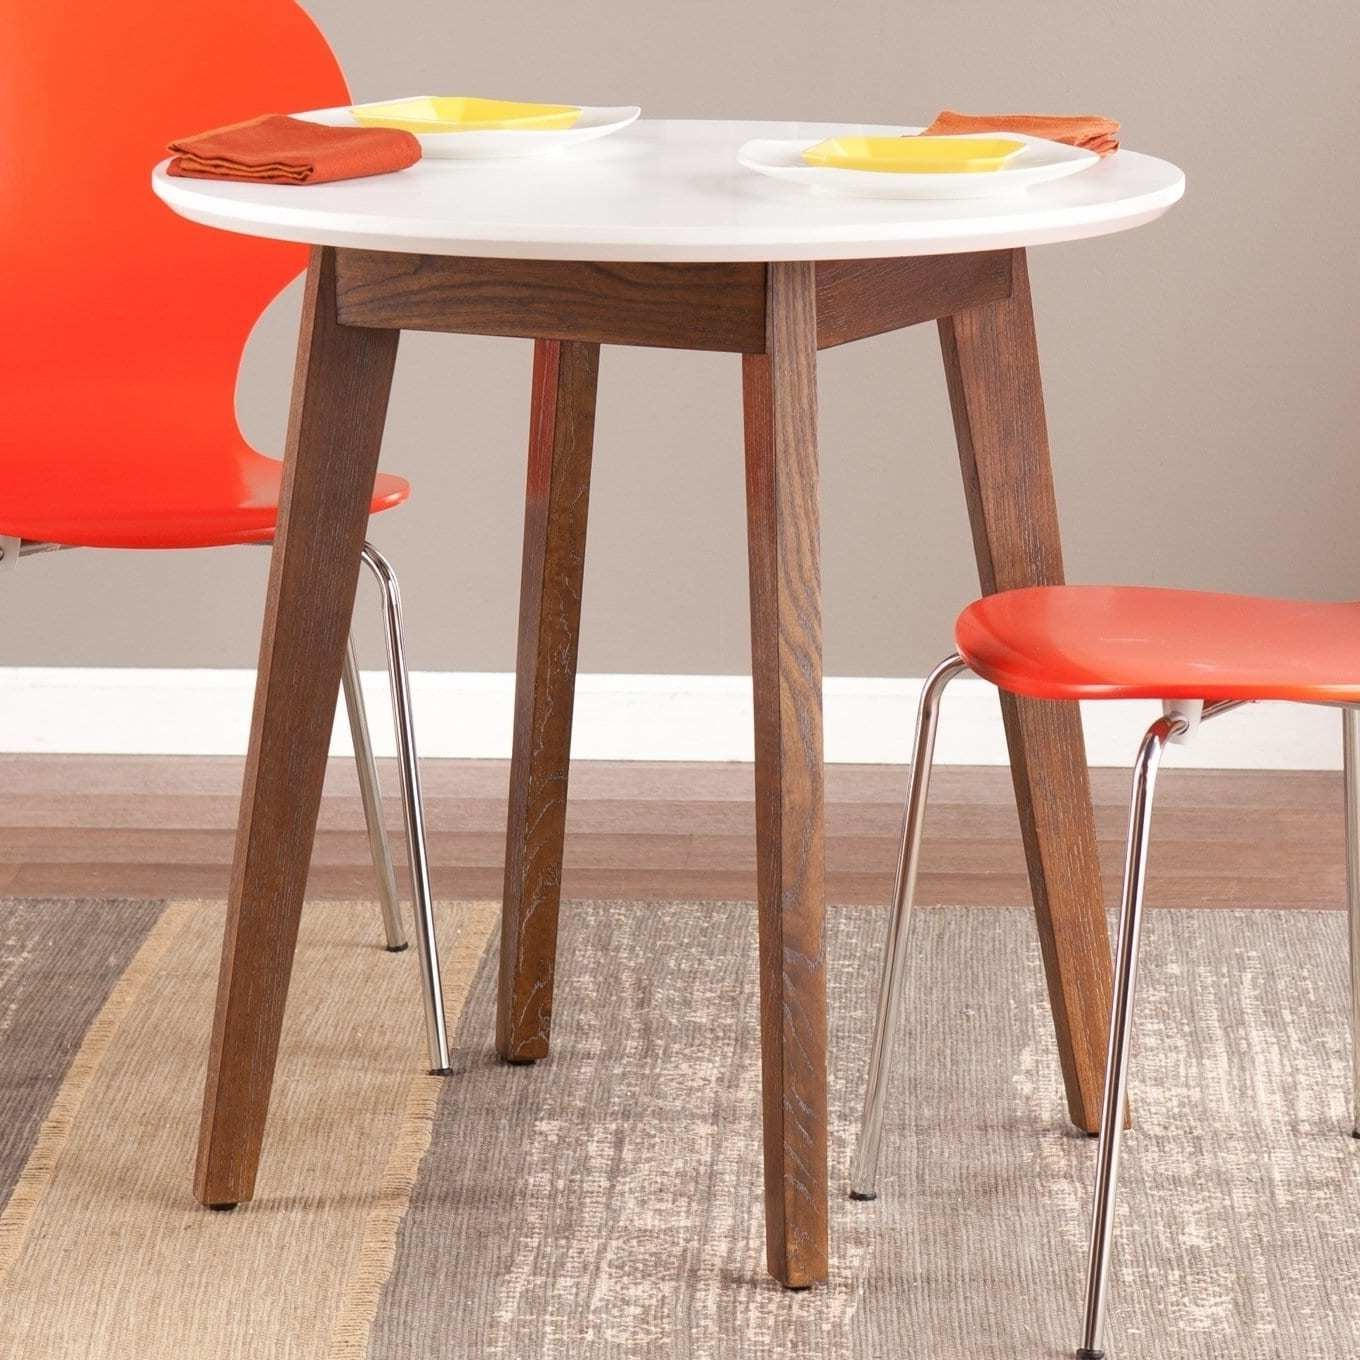 Winsome 3 Piece Counter Height Dining Sets Inside 2019 Dining Tables For Small Spaces – Small Spaces – Lonny (View 16 of 25)